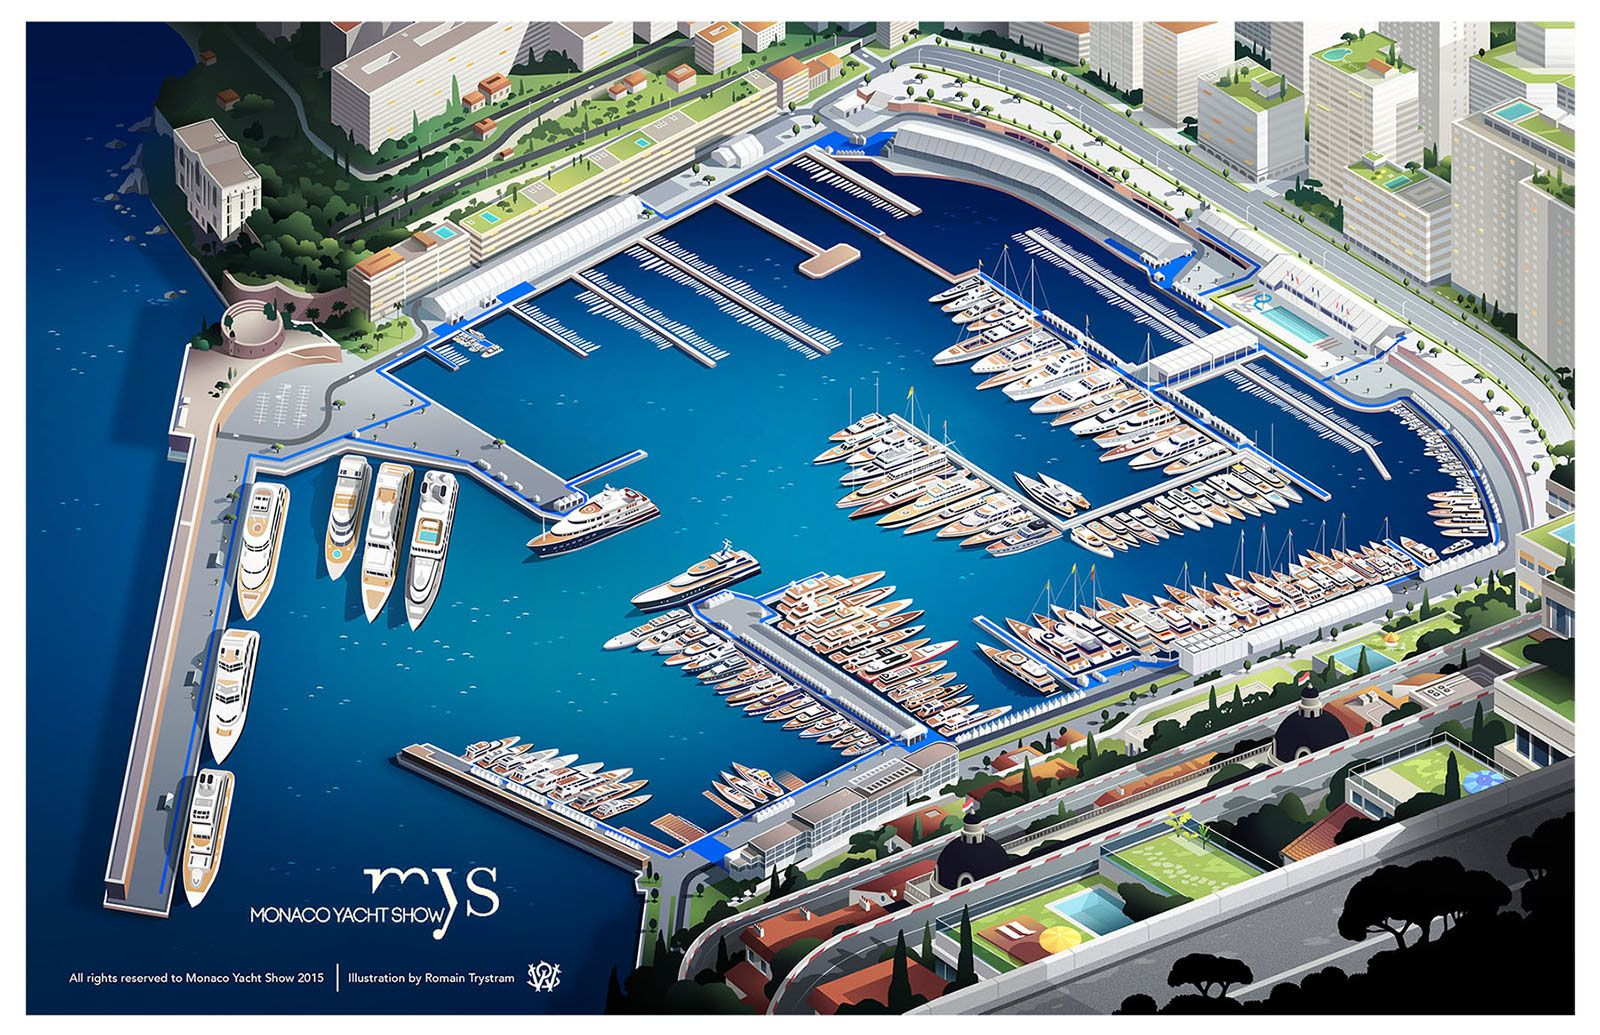 Monaco Yacht Show 2015 on Behance